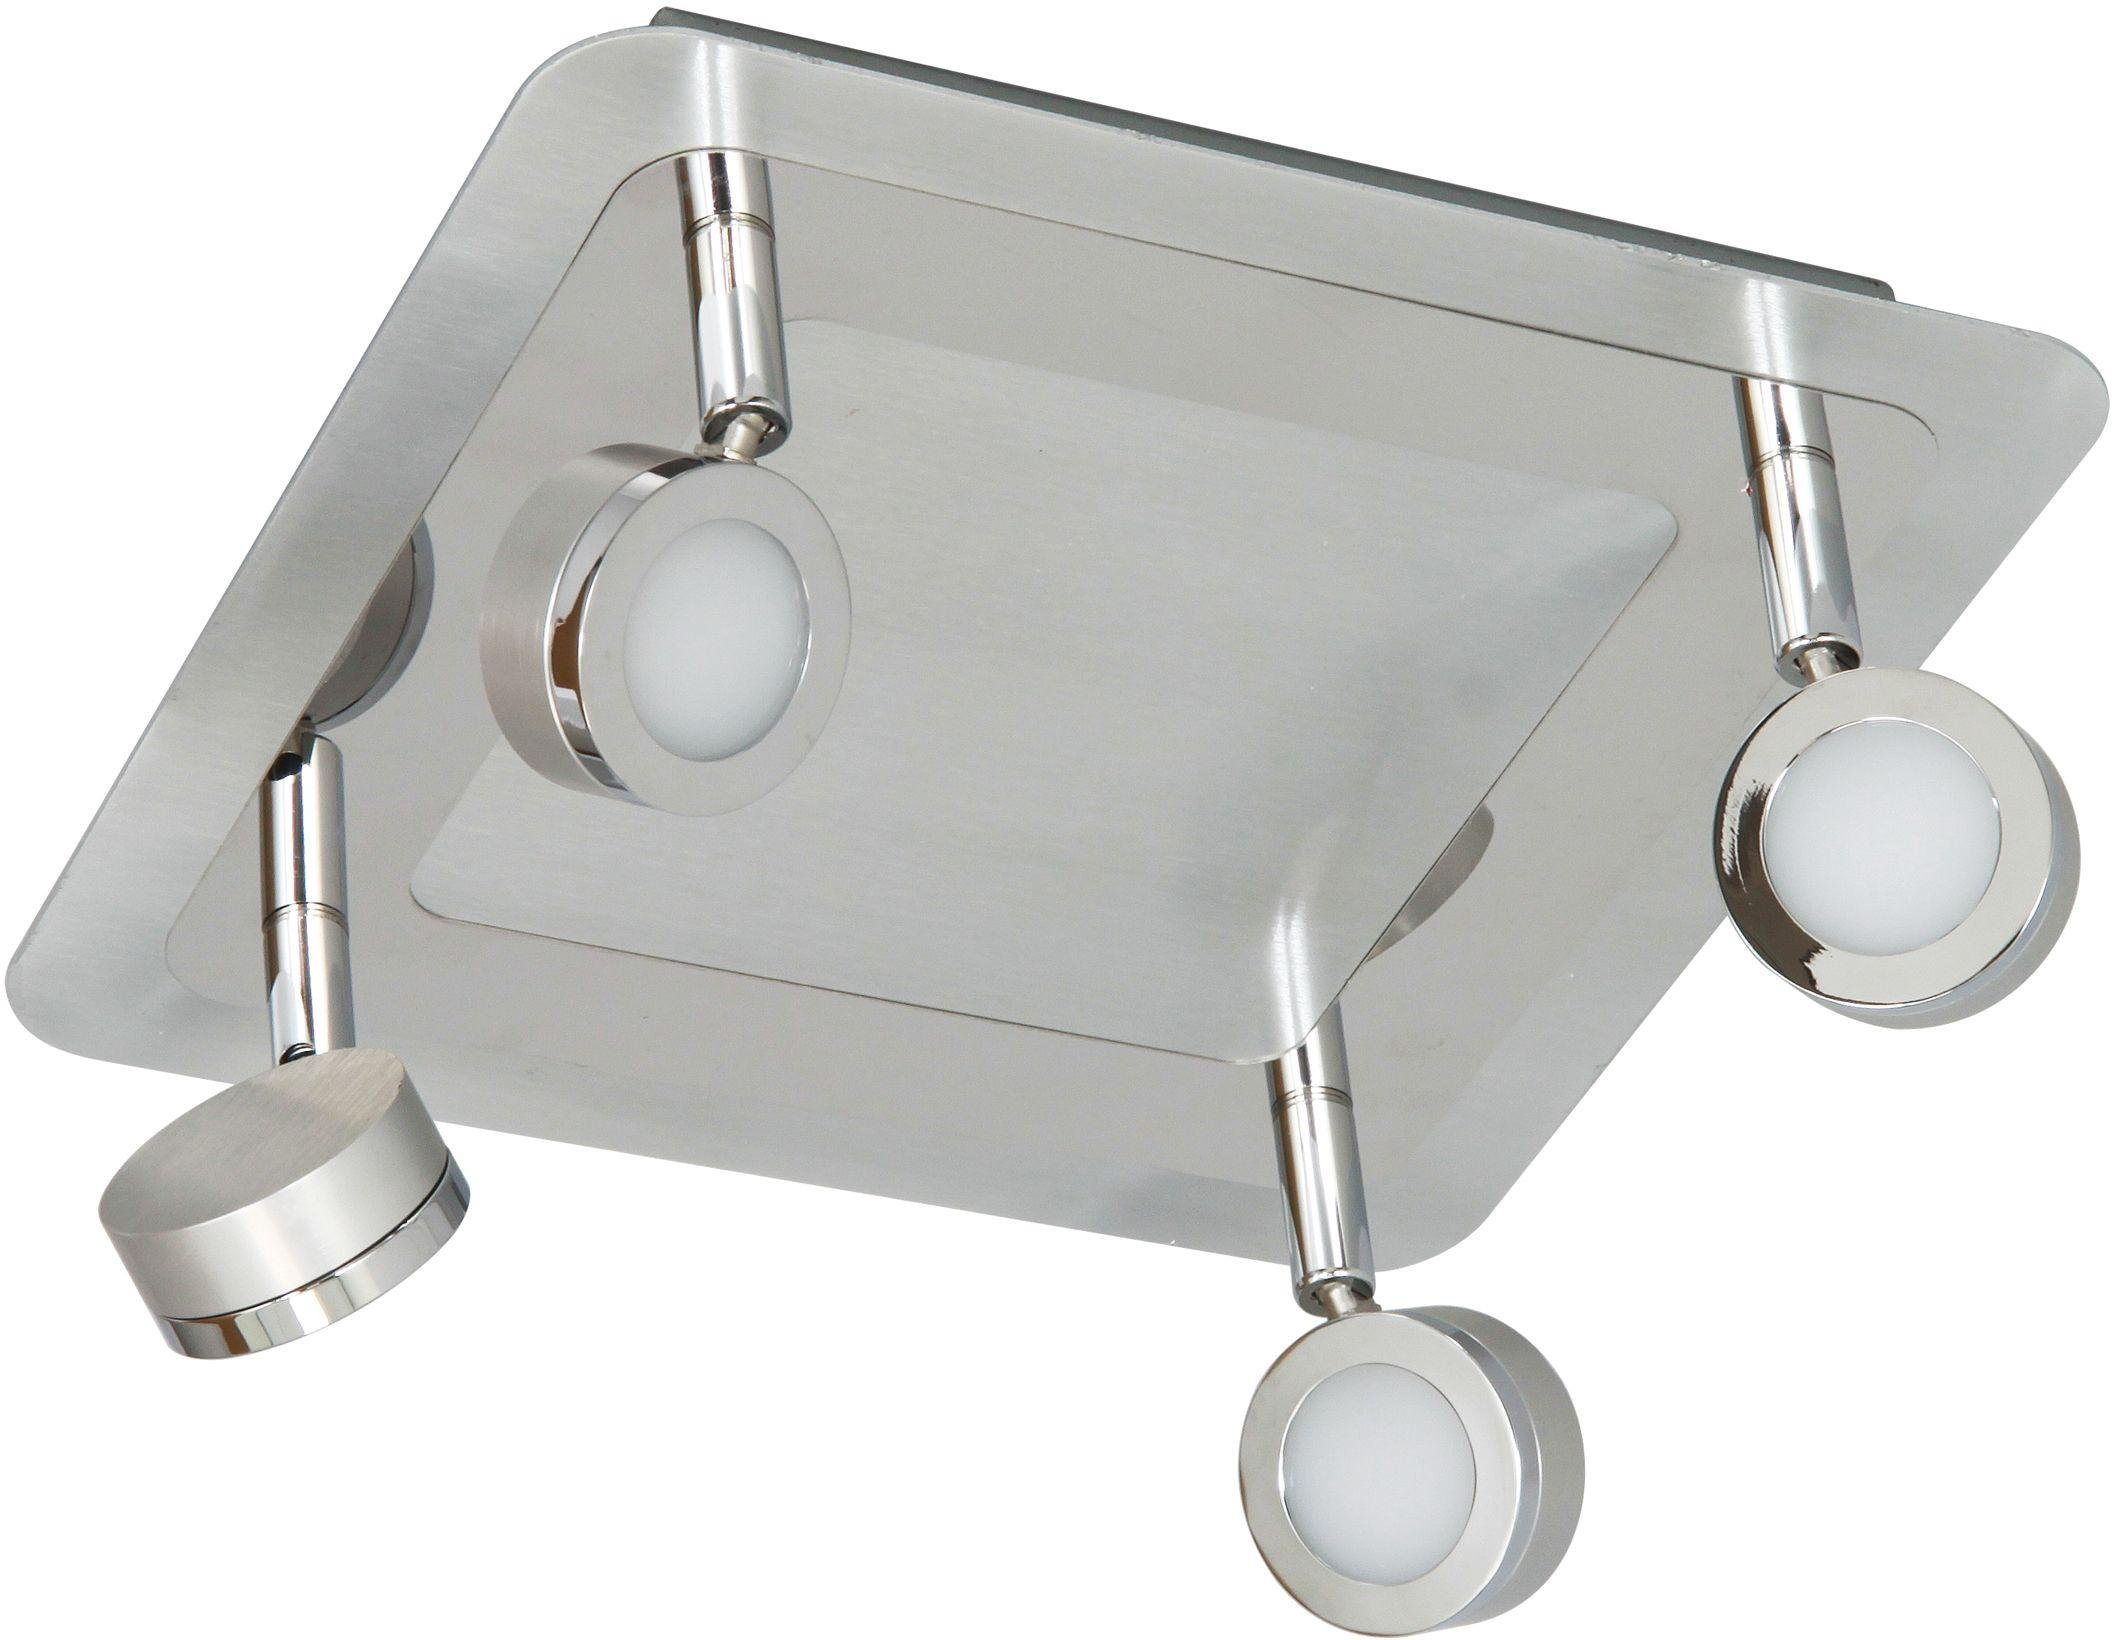 Ranex Treviso 4 Piece Bathroom Light - Brushed Aluminium